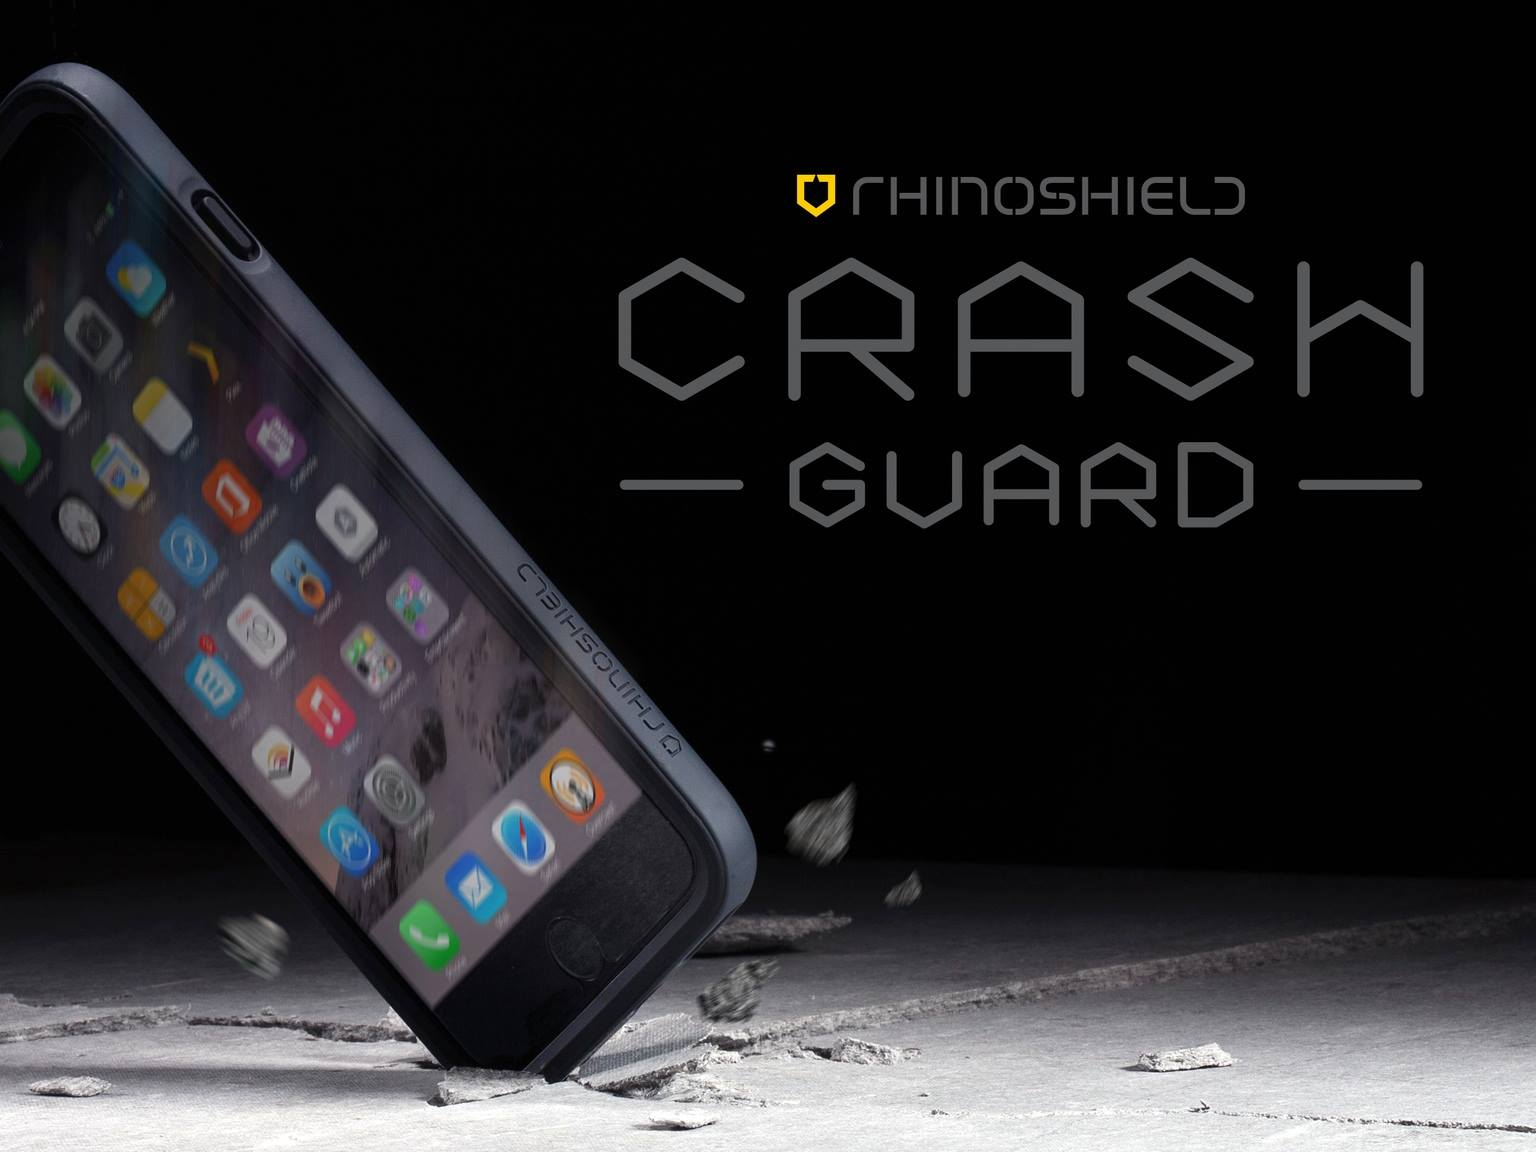 11756696 1038903606120970 185104811 o - Rhinoshield Debuts in the Philippines, Introduces Crash Guard Bumper Case and Impact Screen Protector